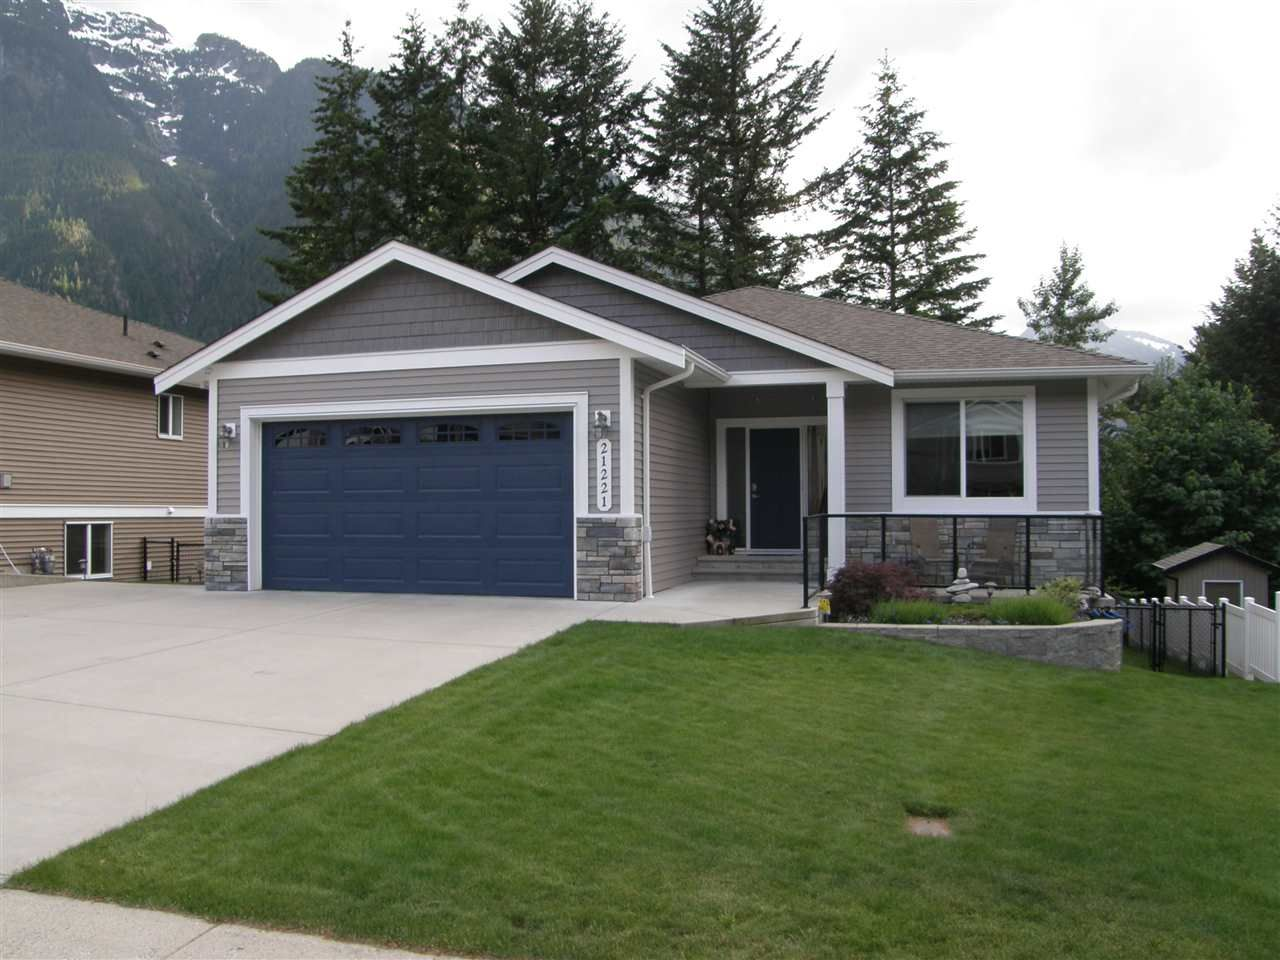 Main Photo: 21221 KETTLE VALLEY Place in Hope: Hope Kawkawa Lake House for sale : MLS®# R2274264